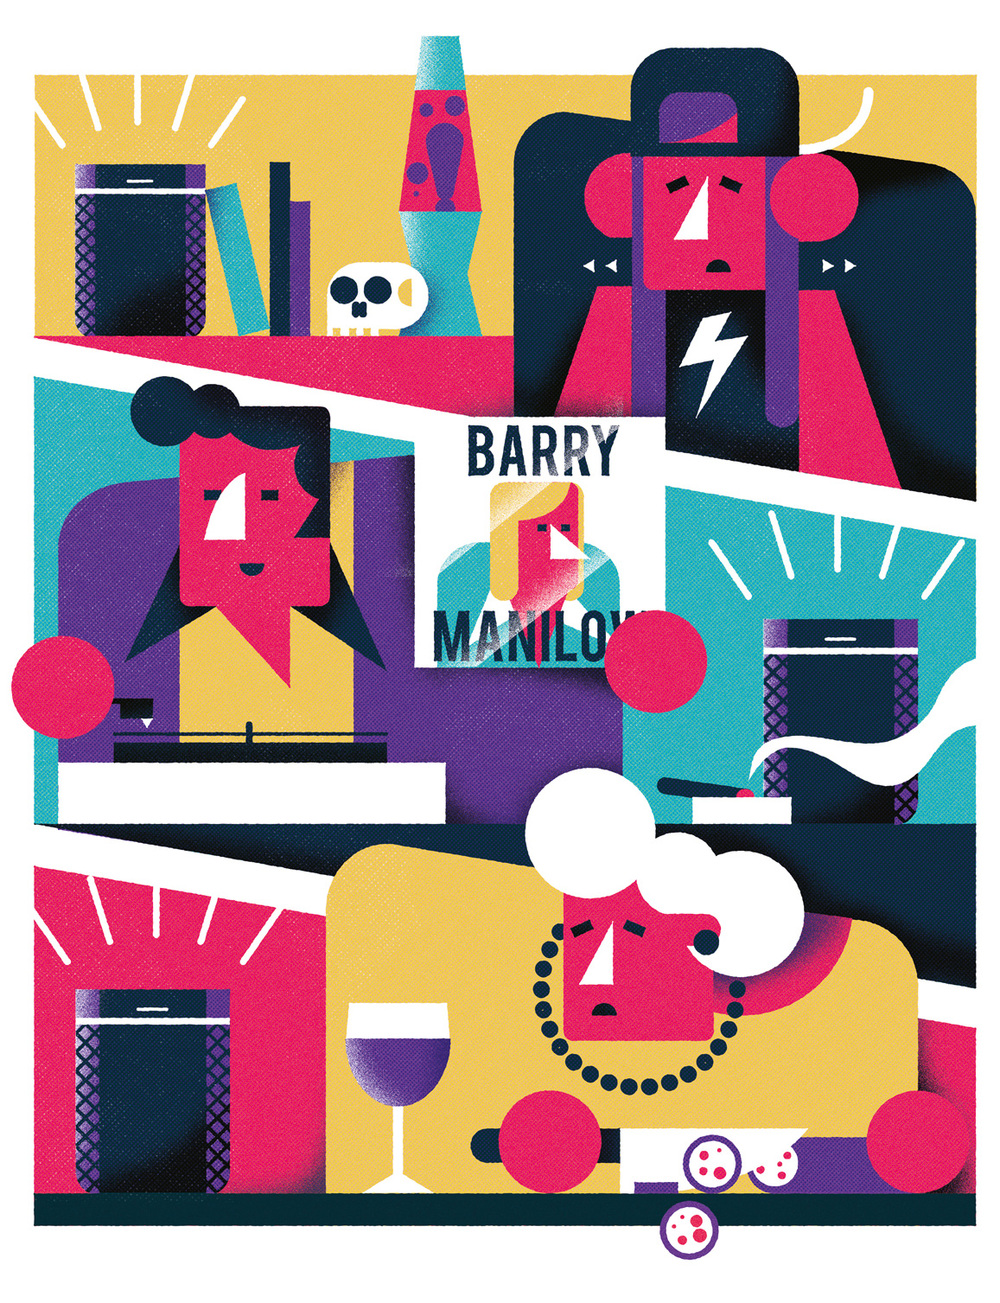 Freelance illustrator dale edwin murray t3 magazine editorial illustration